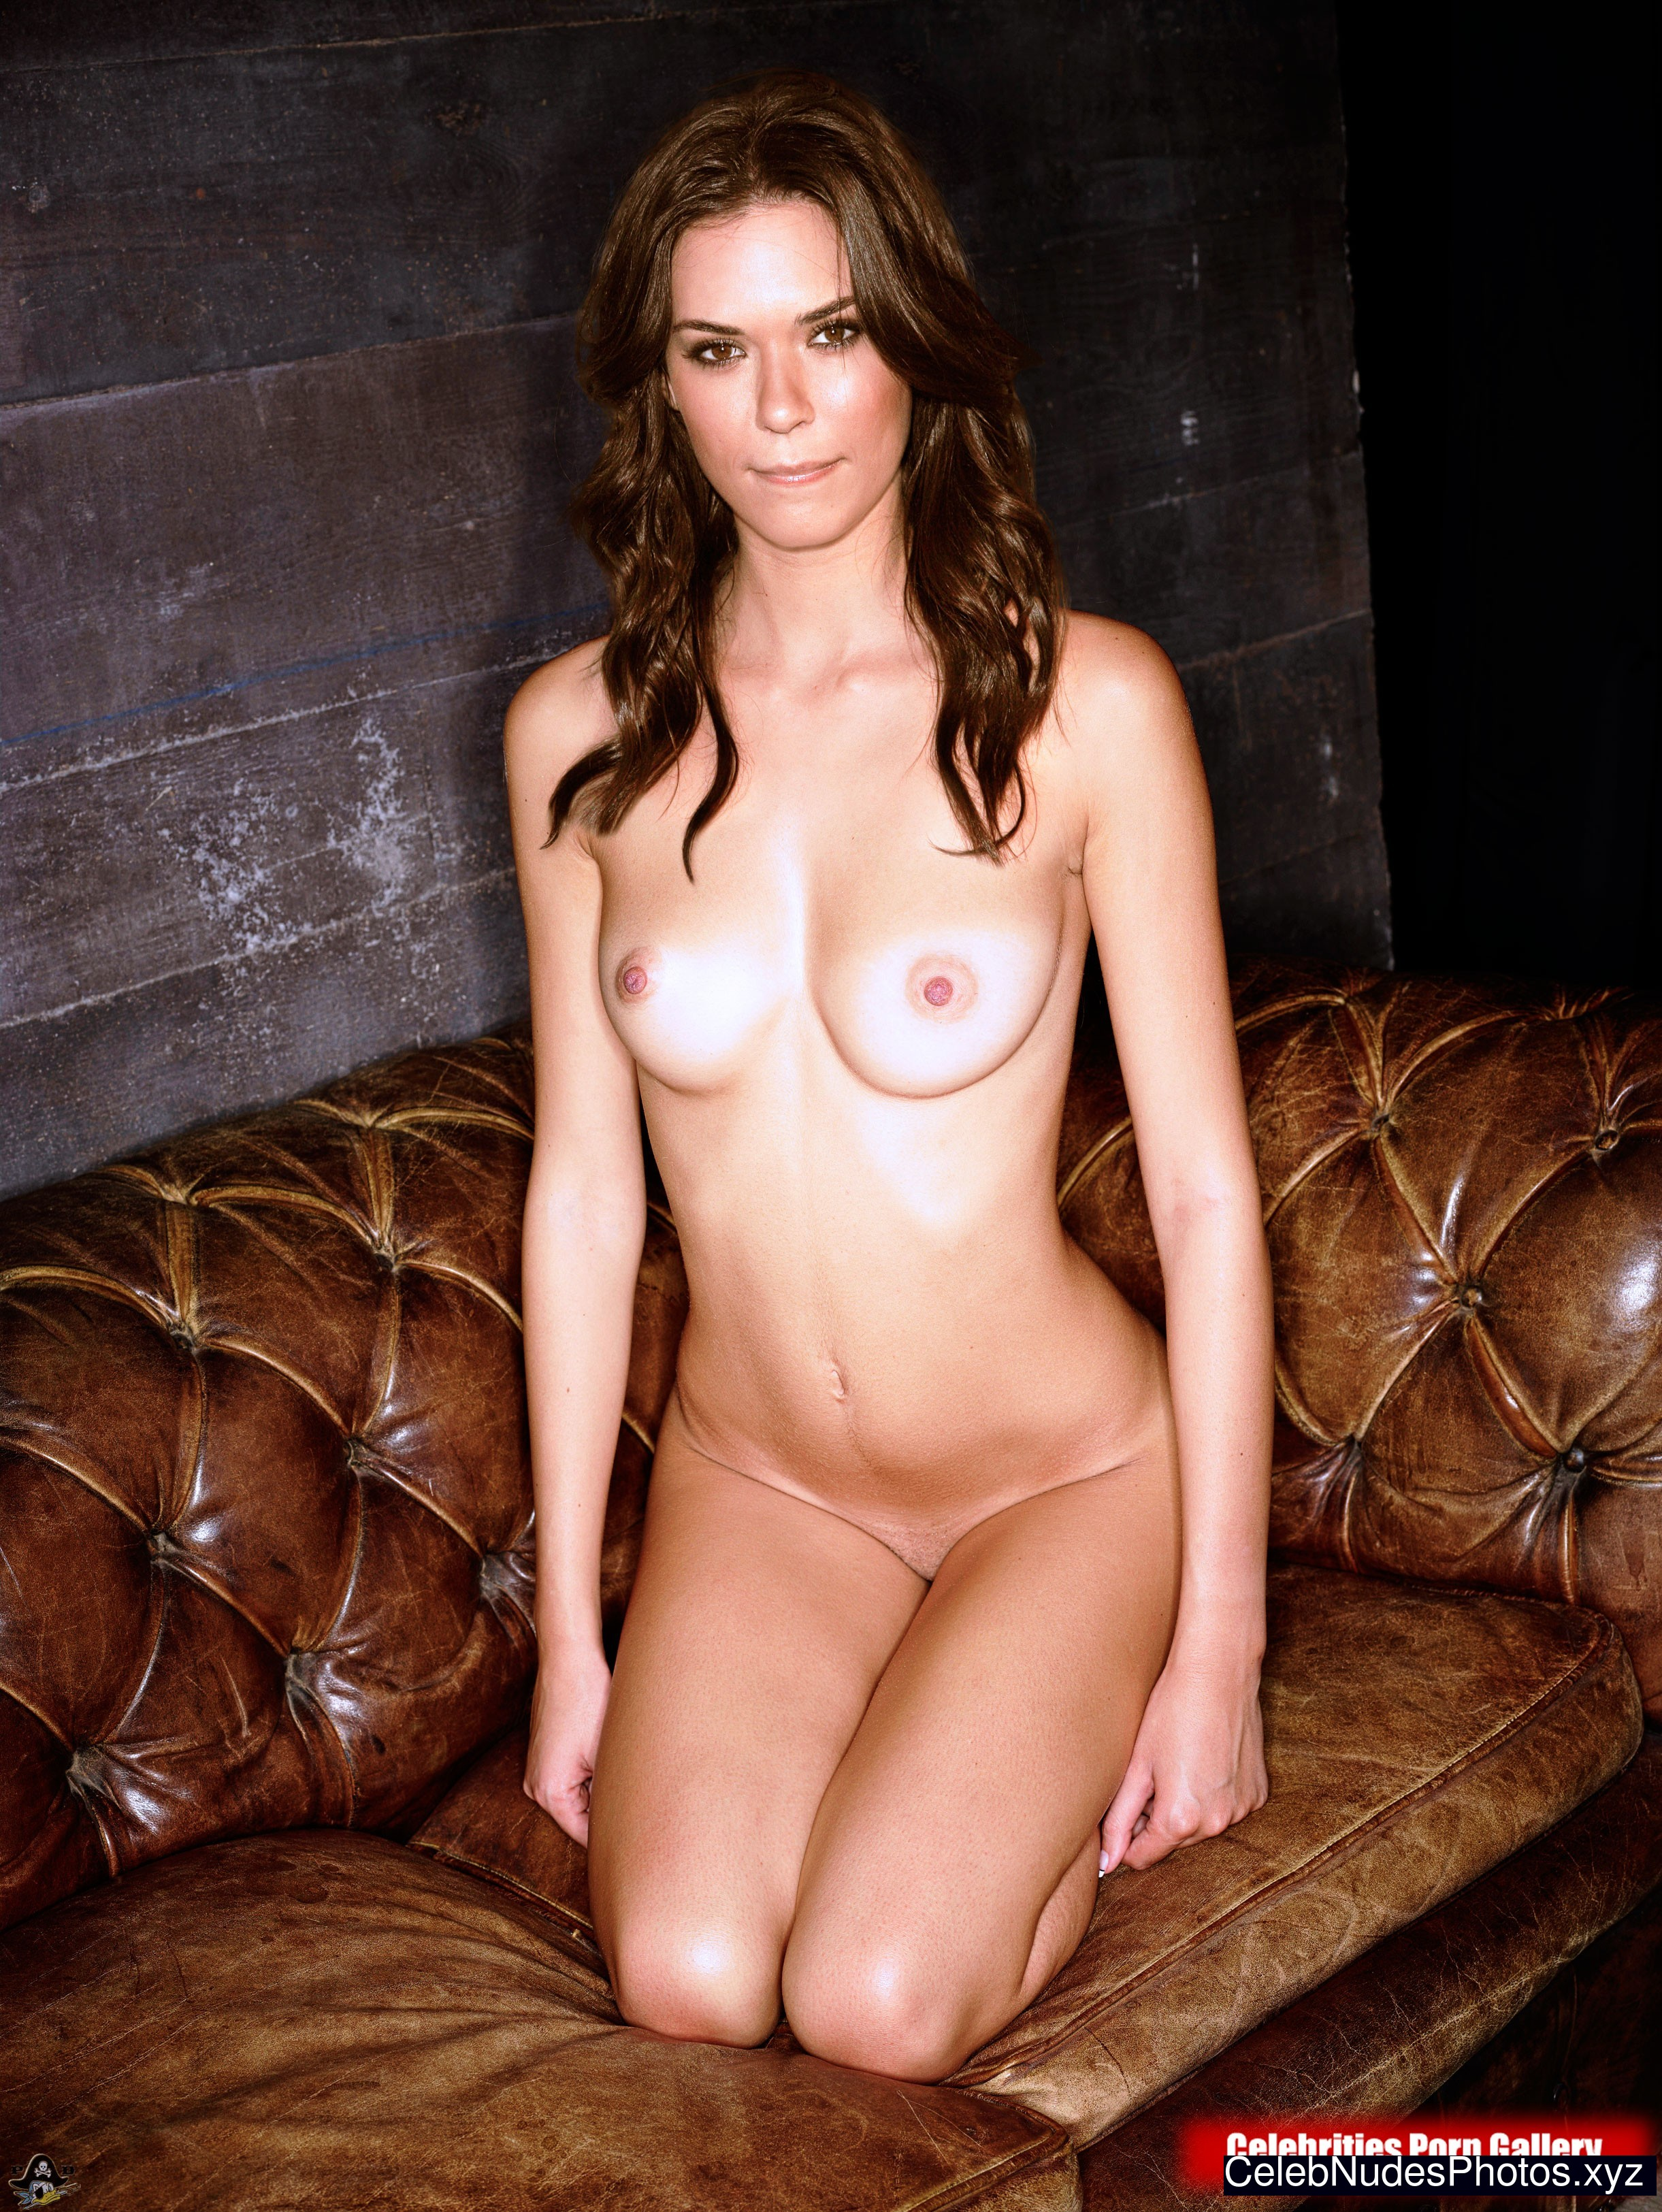 Odette Annable (née Yustman) naked celebritys